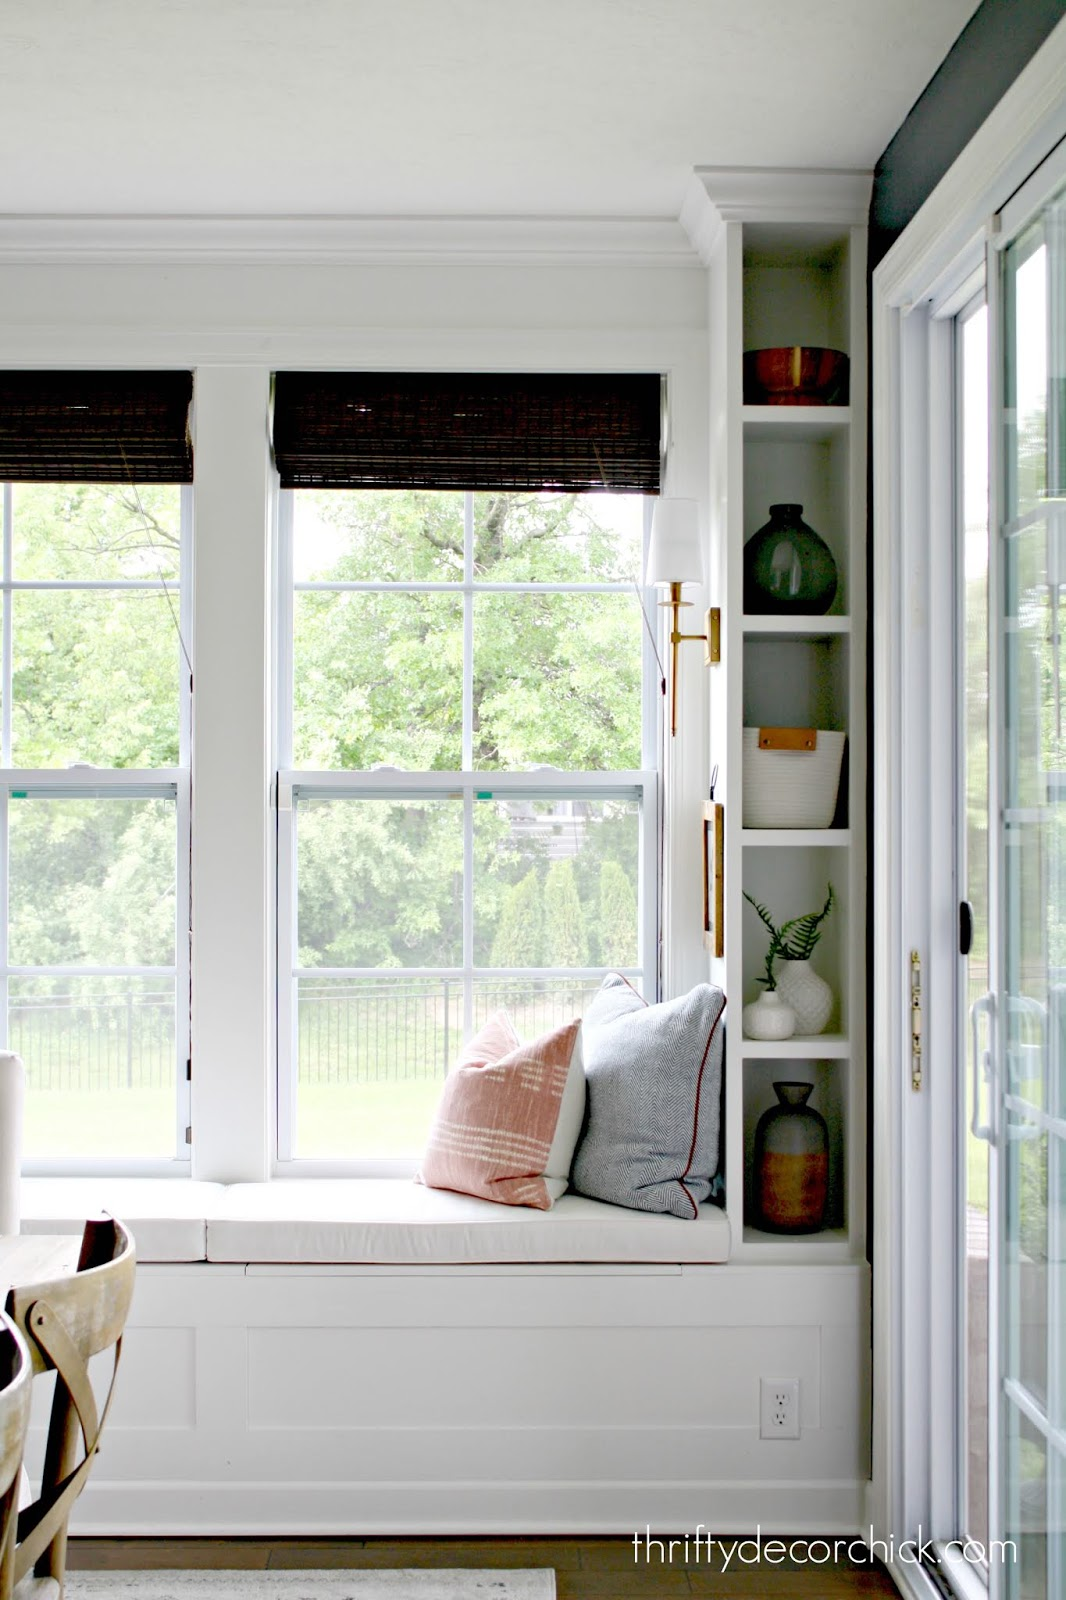 Window seat with bookshelves and lights